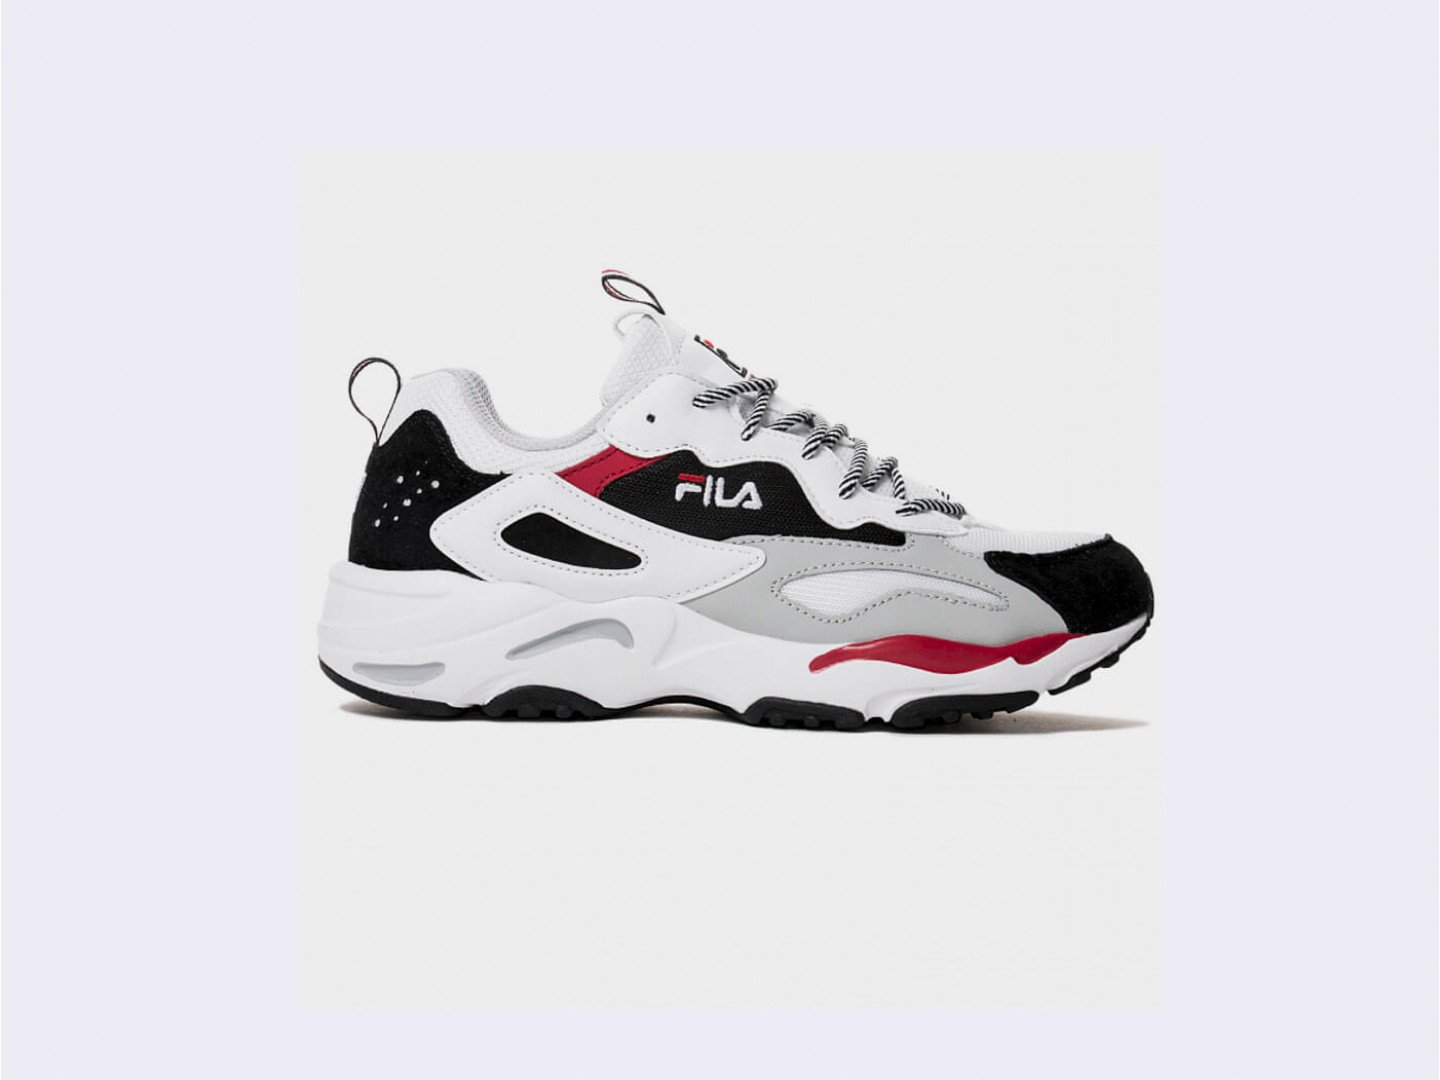 Кроссовки Fila Ray Tracer / white, black, grey